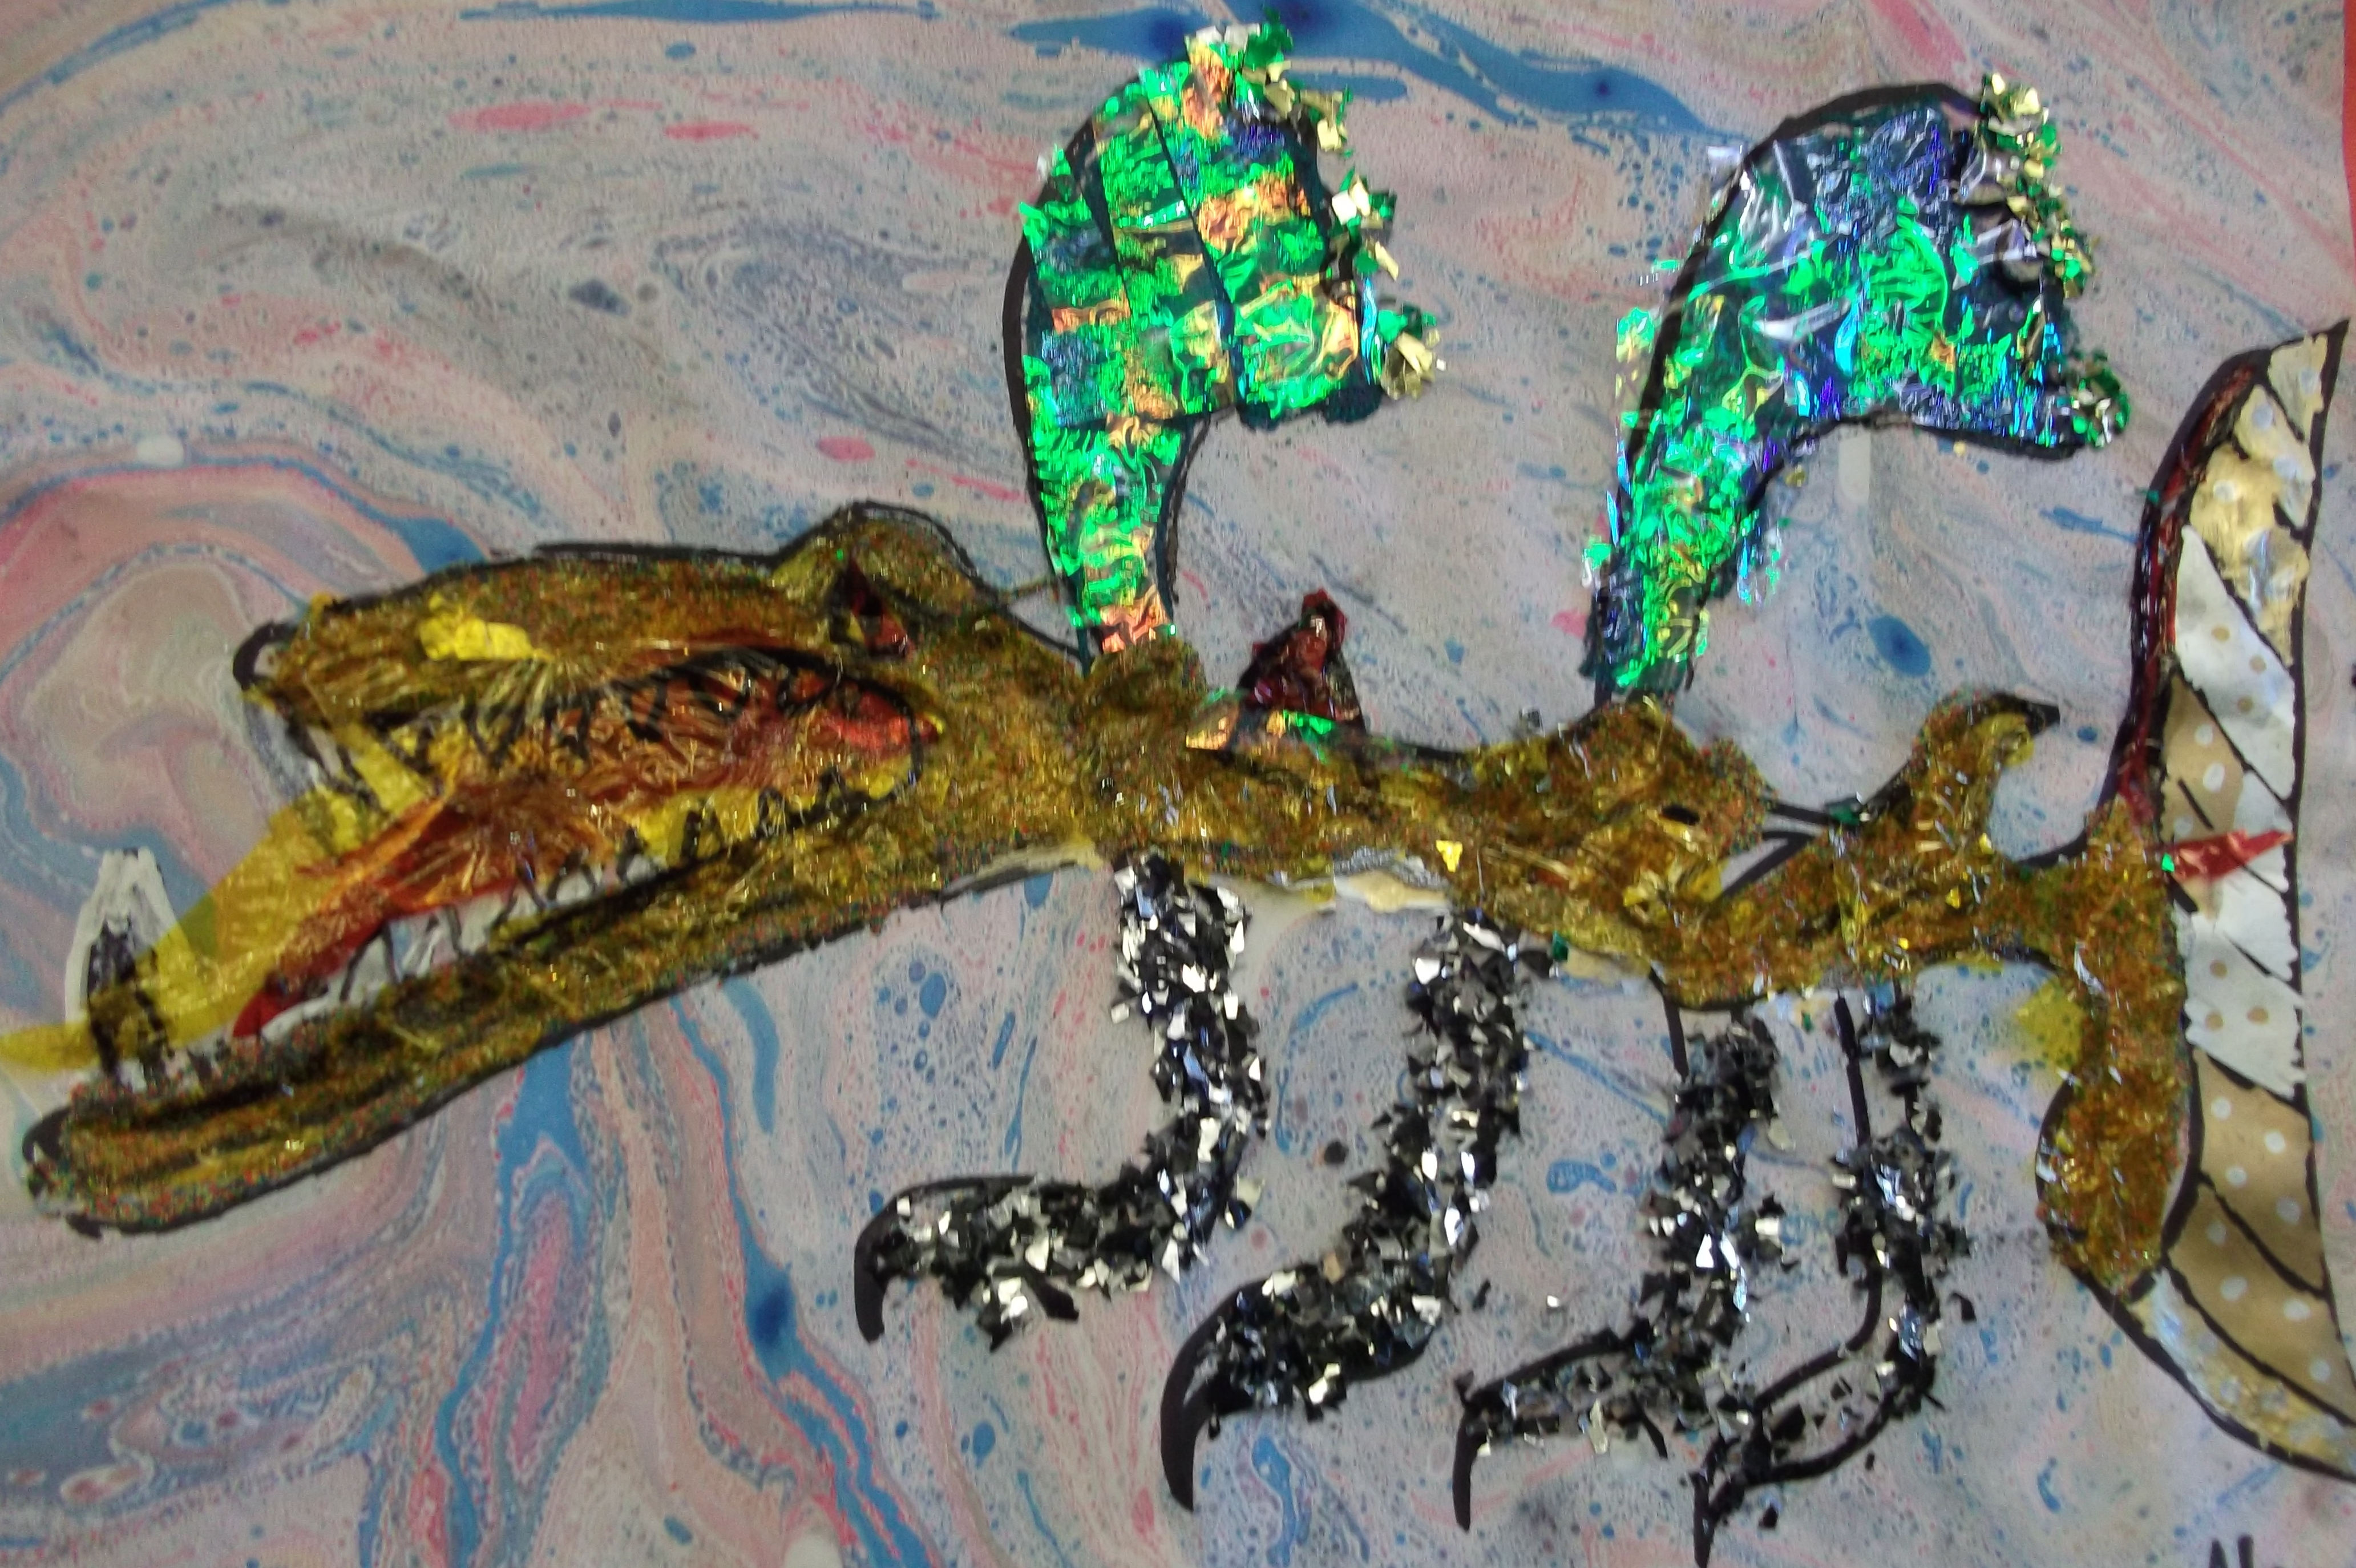 Mixed media collage of a dragon by Y4 child, inspired by Uccello's St George and the Dragon